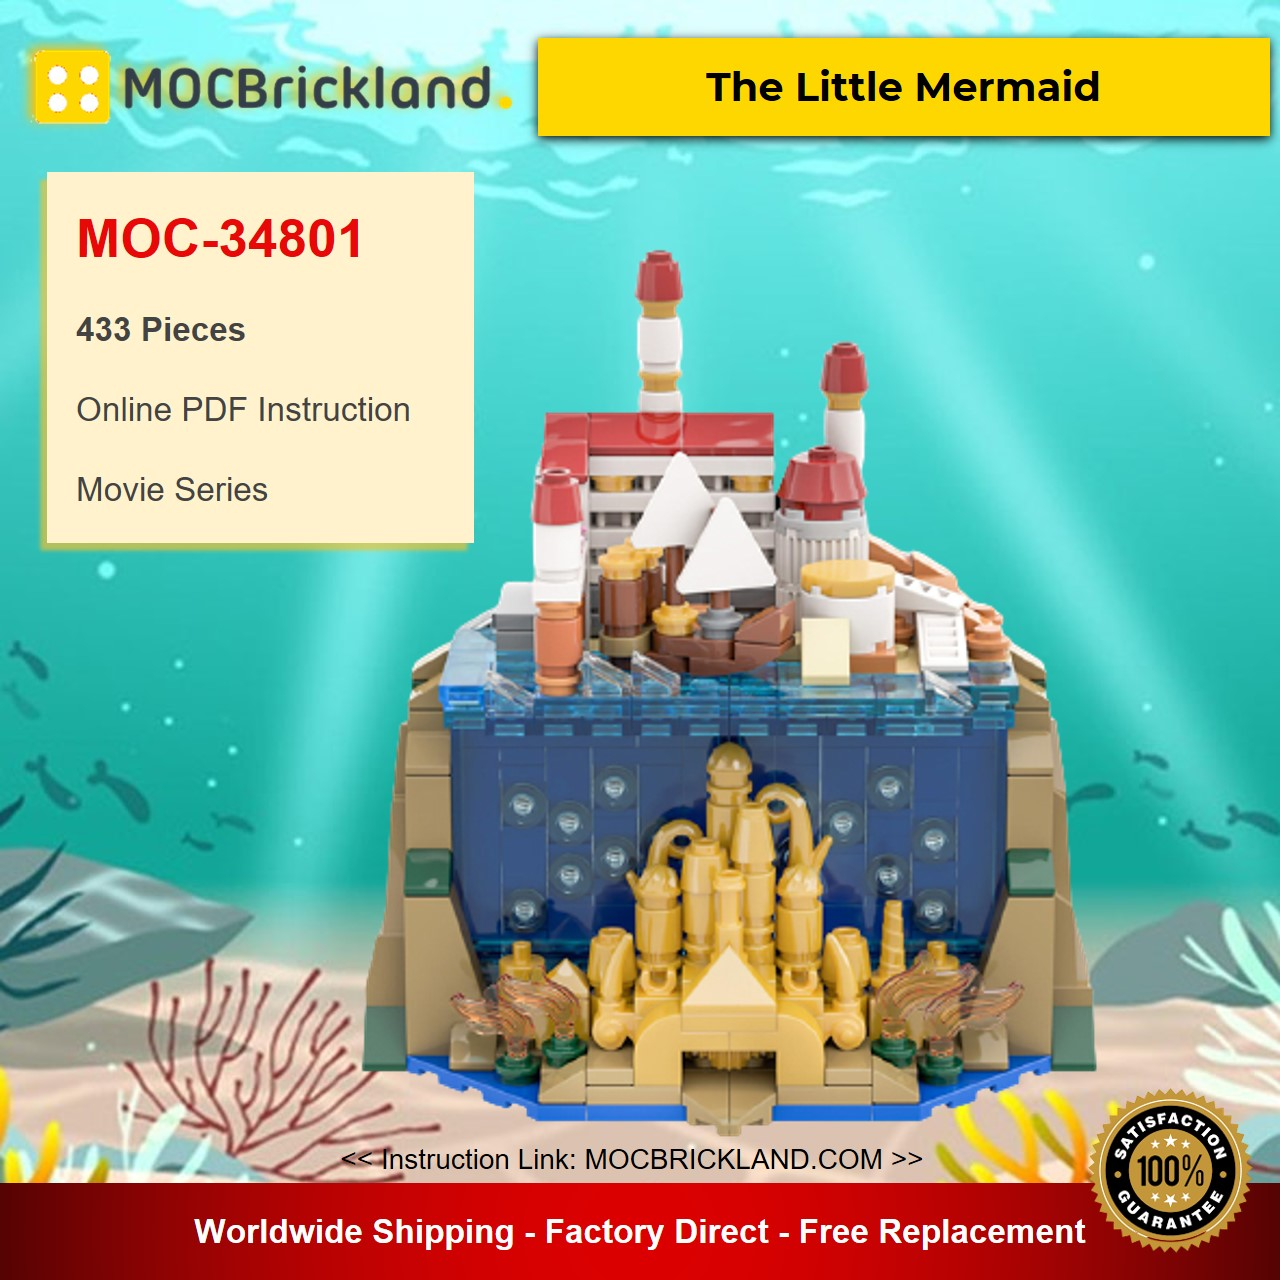 The Little Mermaid MOC-34801 Movie Designed By benbuildslego With 344 Pieces